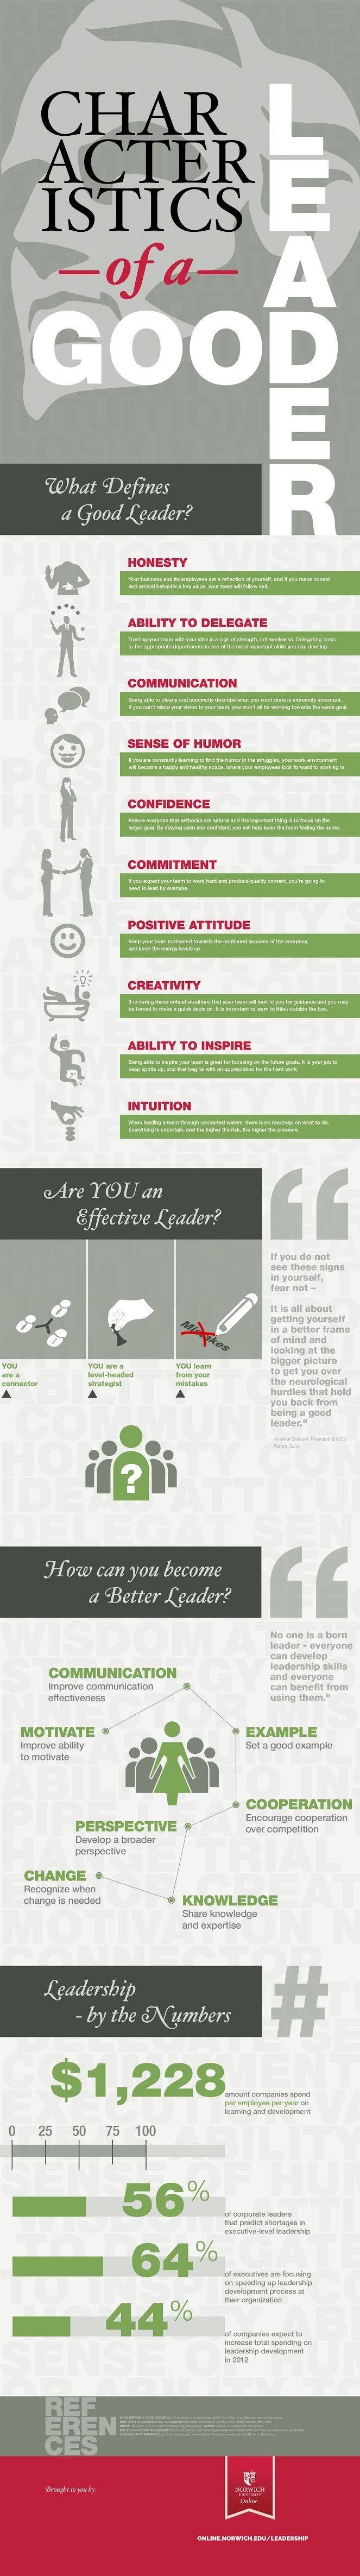 characteristics-of-a-good-leade-infographic